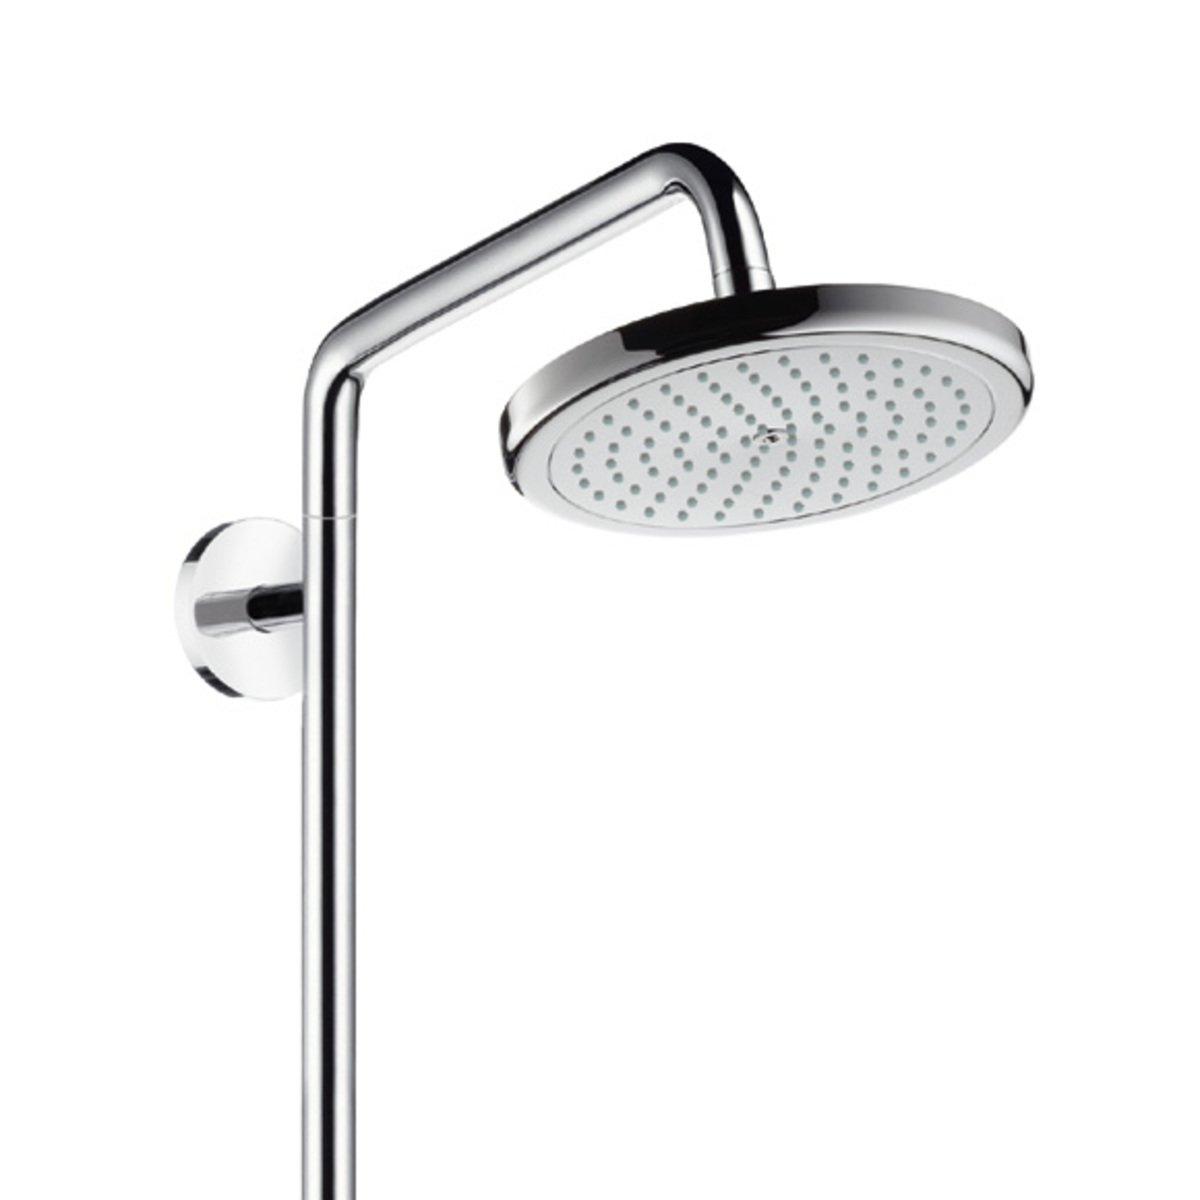 hansgrohe croma colonne de douche sans robinet pour r novation avec douchette main 100 vario. Black Bedroom Furniture Sets. Home Design Ideas